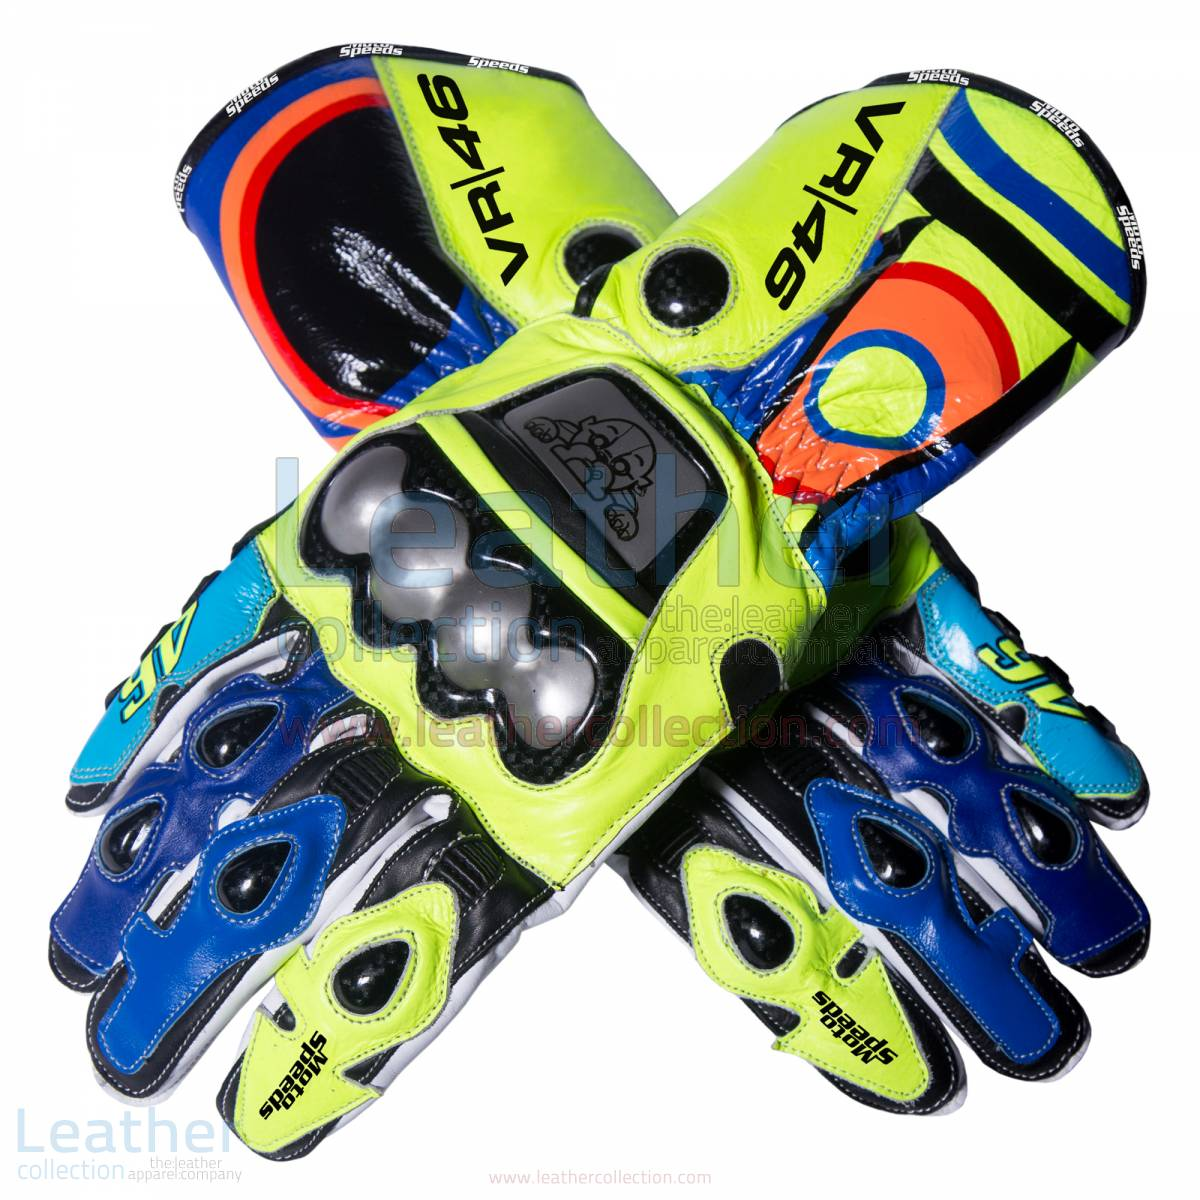 Motogp Gloves